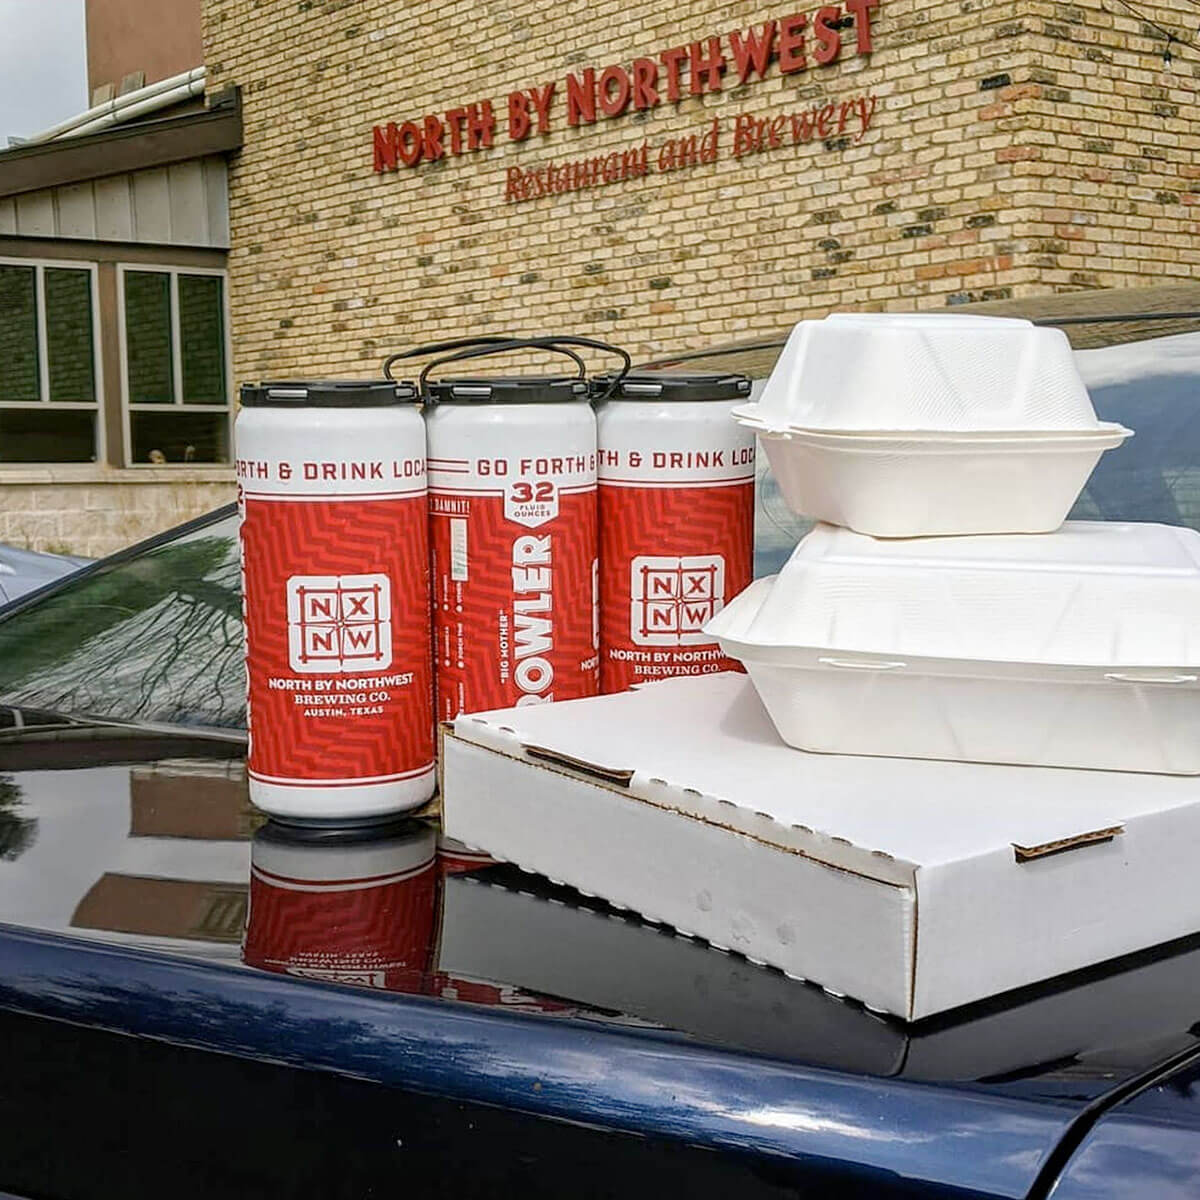 A six pack of crowlers and food-to-go at North By Northwest Restaurant and Brewery in Austin, Texas